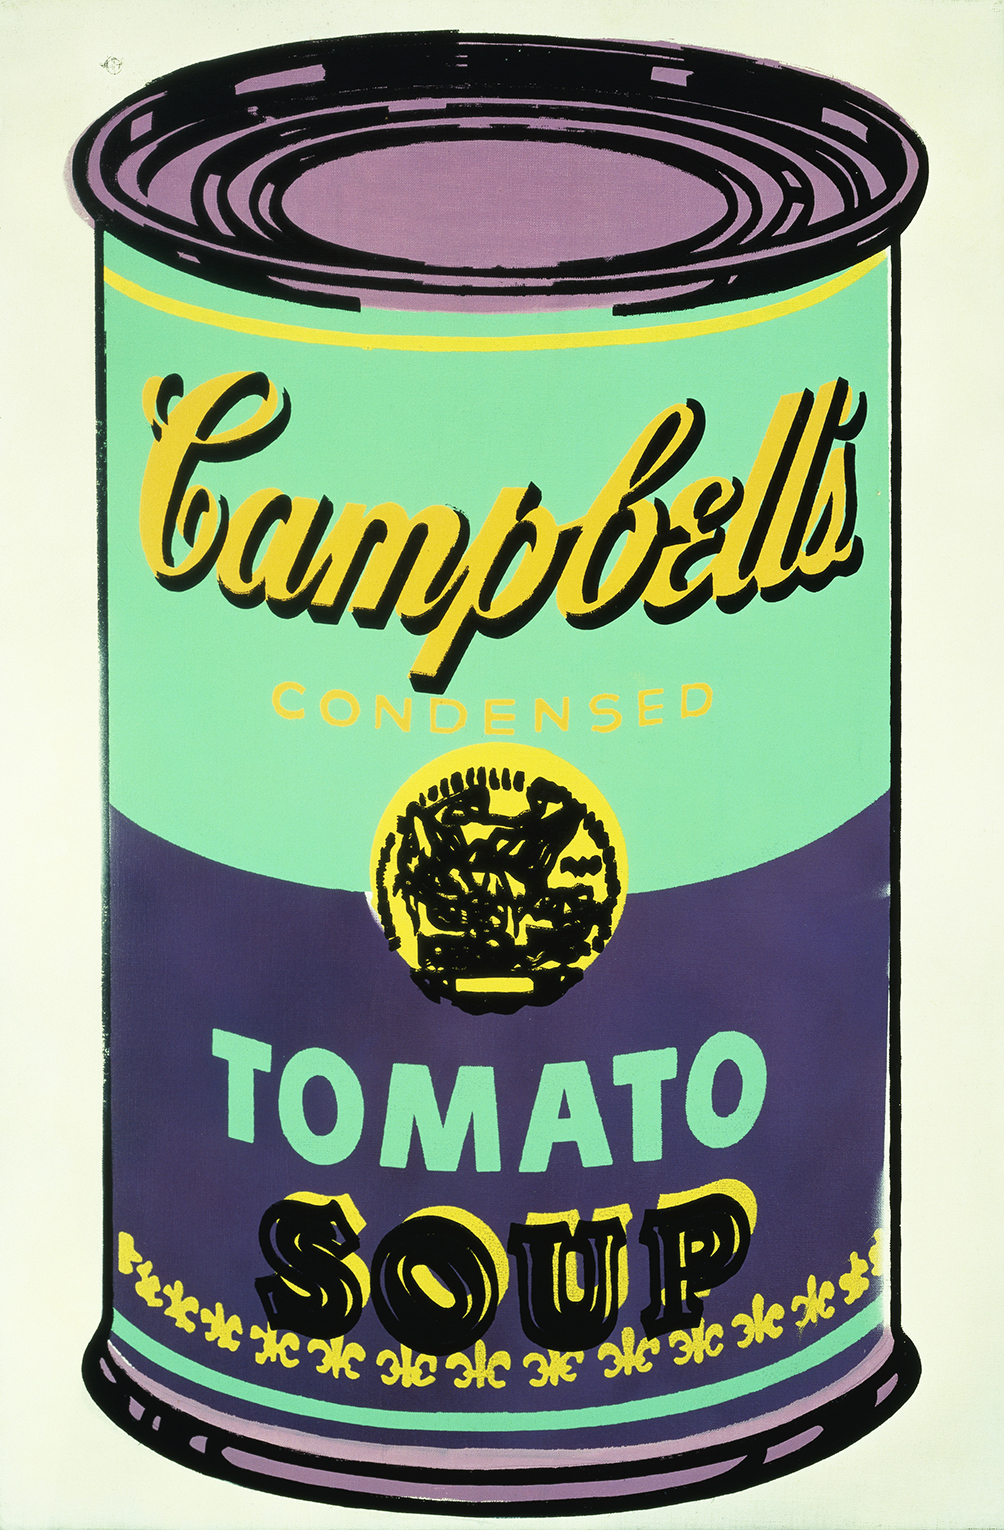 Colored Campbells Soup Can 1965 Andy Warhol The Andy Warhol Foundation For The Visual Arts Inc Dacsartimage 2018